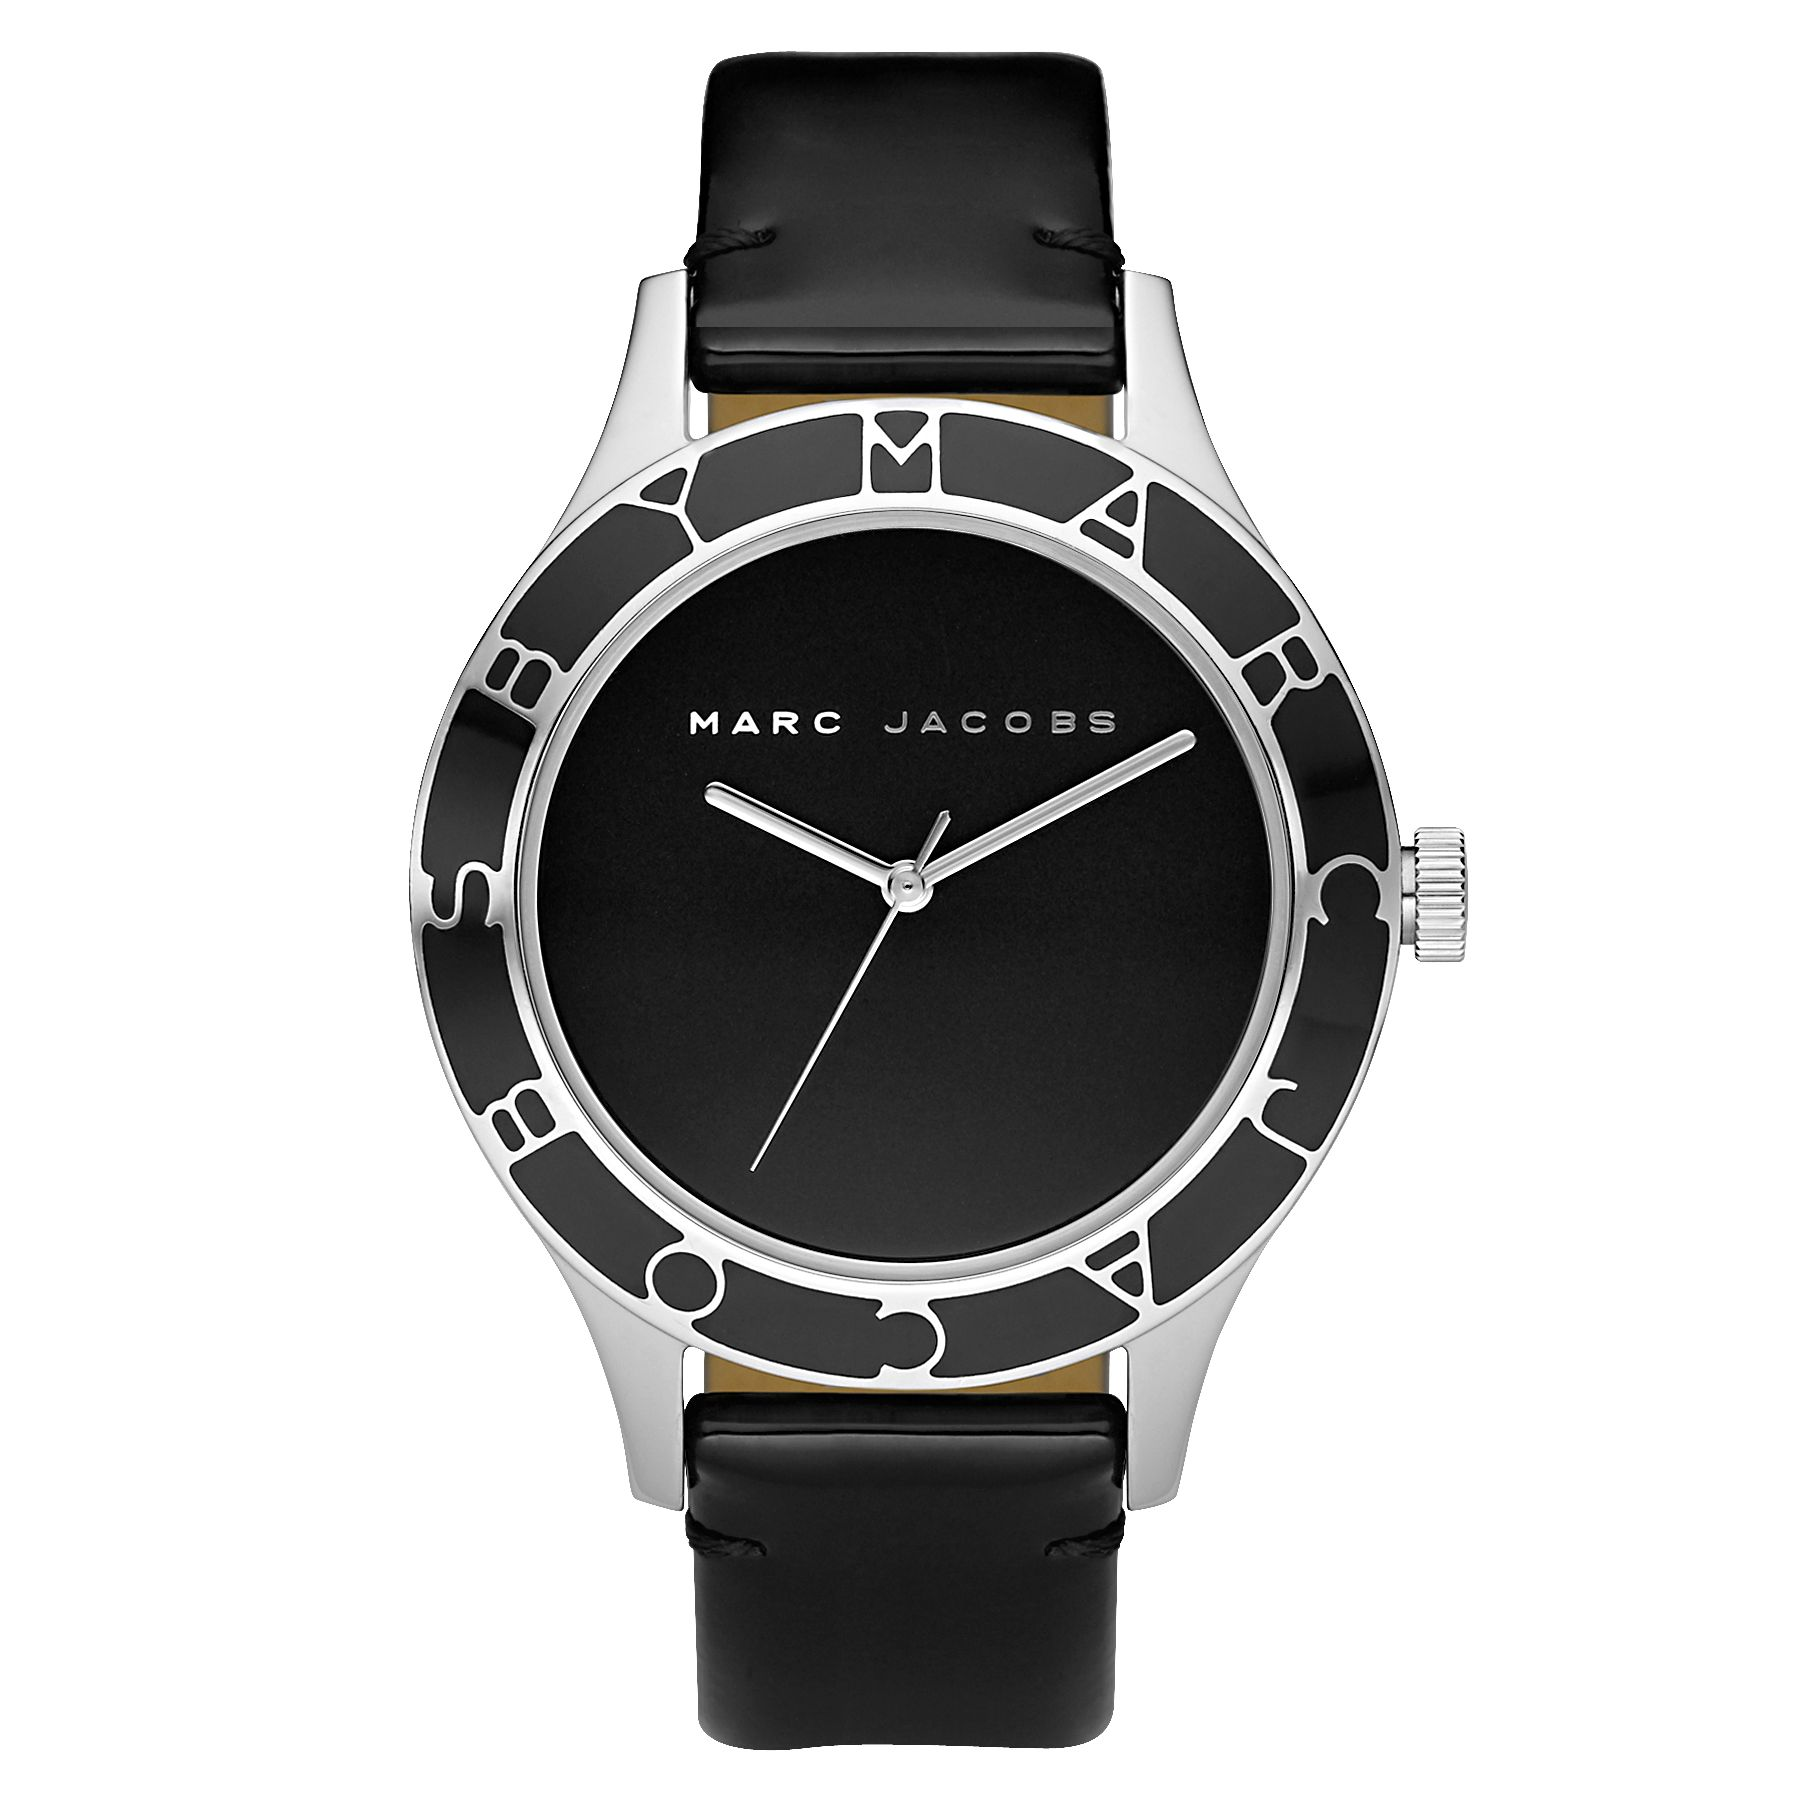 Marc by Marc Jacobs MBM1087 Black Round Dial Strap Watch